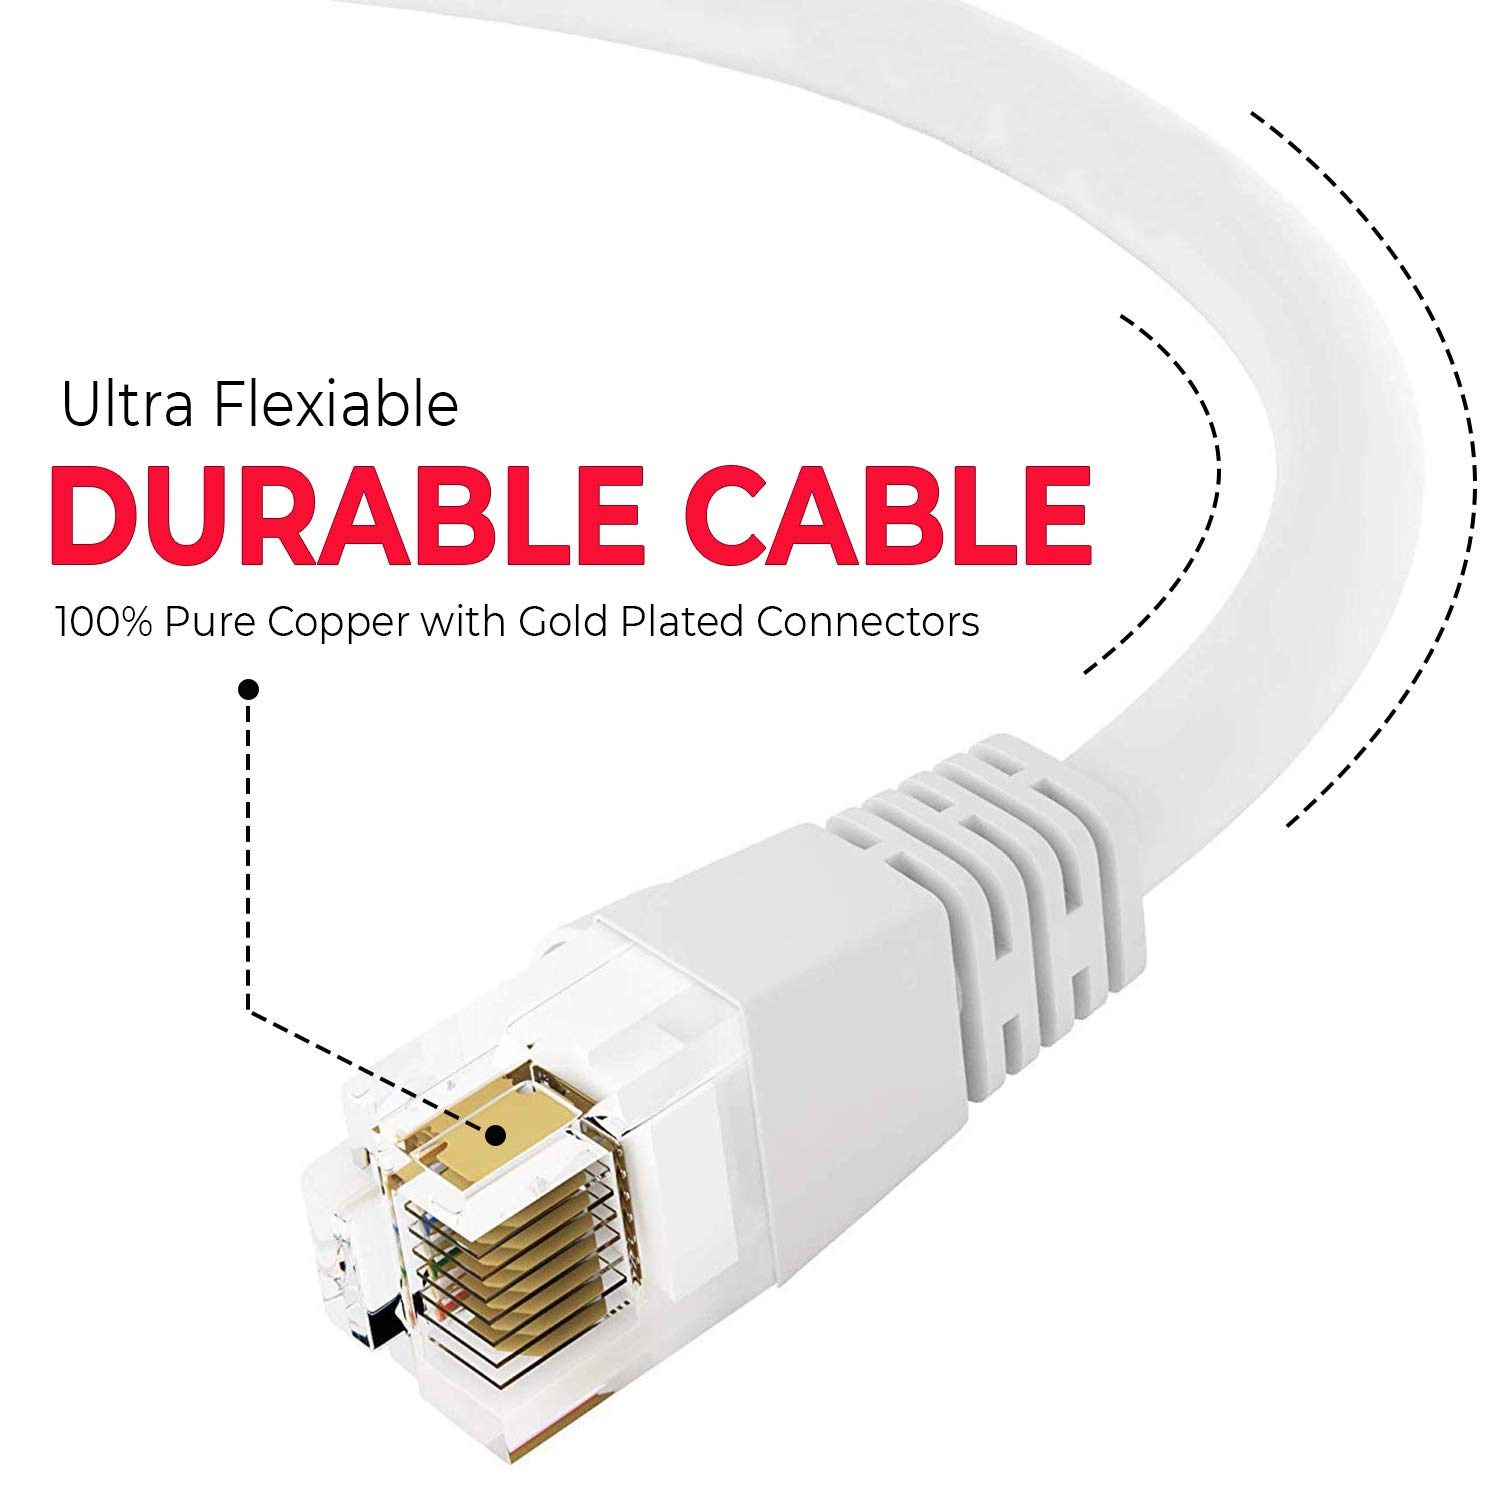 Cat6a Ethernet Cable Computer Network Cable with Snagless Connector UTP 2 Feet - White GOWOS 50-Pack RJ45 10Gbps High Speed LAN Internet Patch Cord Available in 28 Lengths and 10 Colors